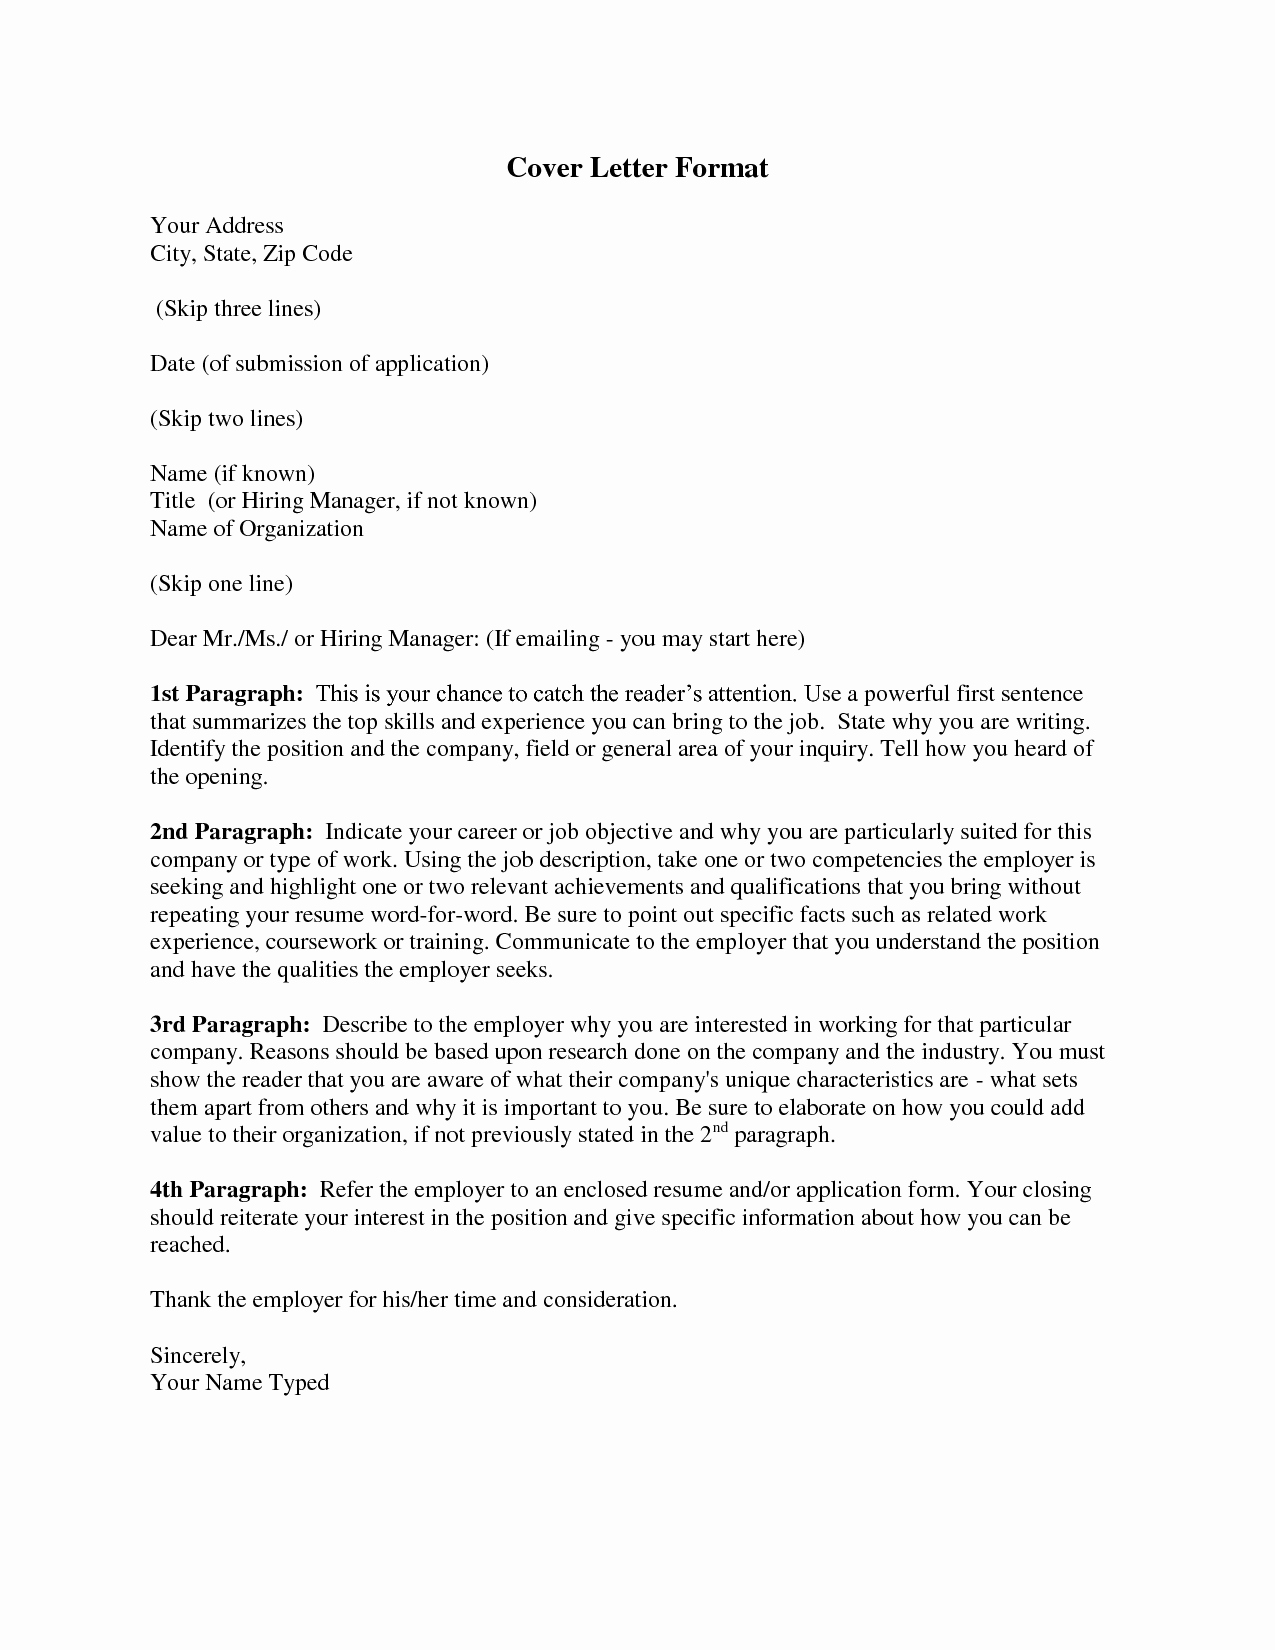 My First Job Experience Essay Best Of Cover Letter format